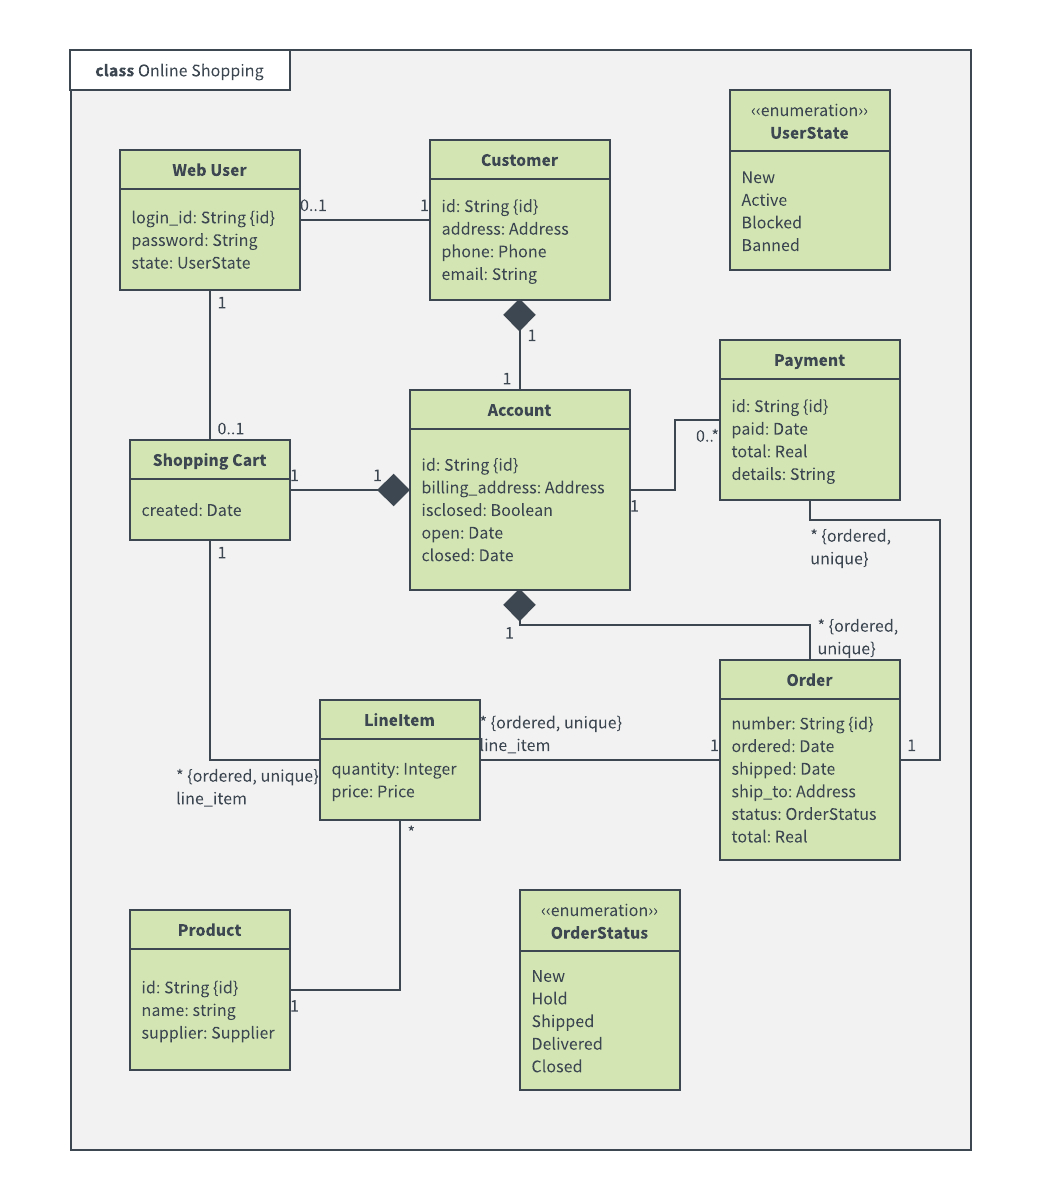 Uml Diagram Templates And Examples | Lucidchart Blog inside Er Diagram For Jewellery Shop Management System